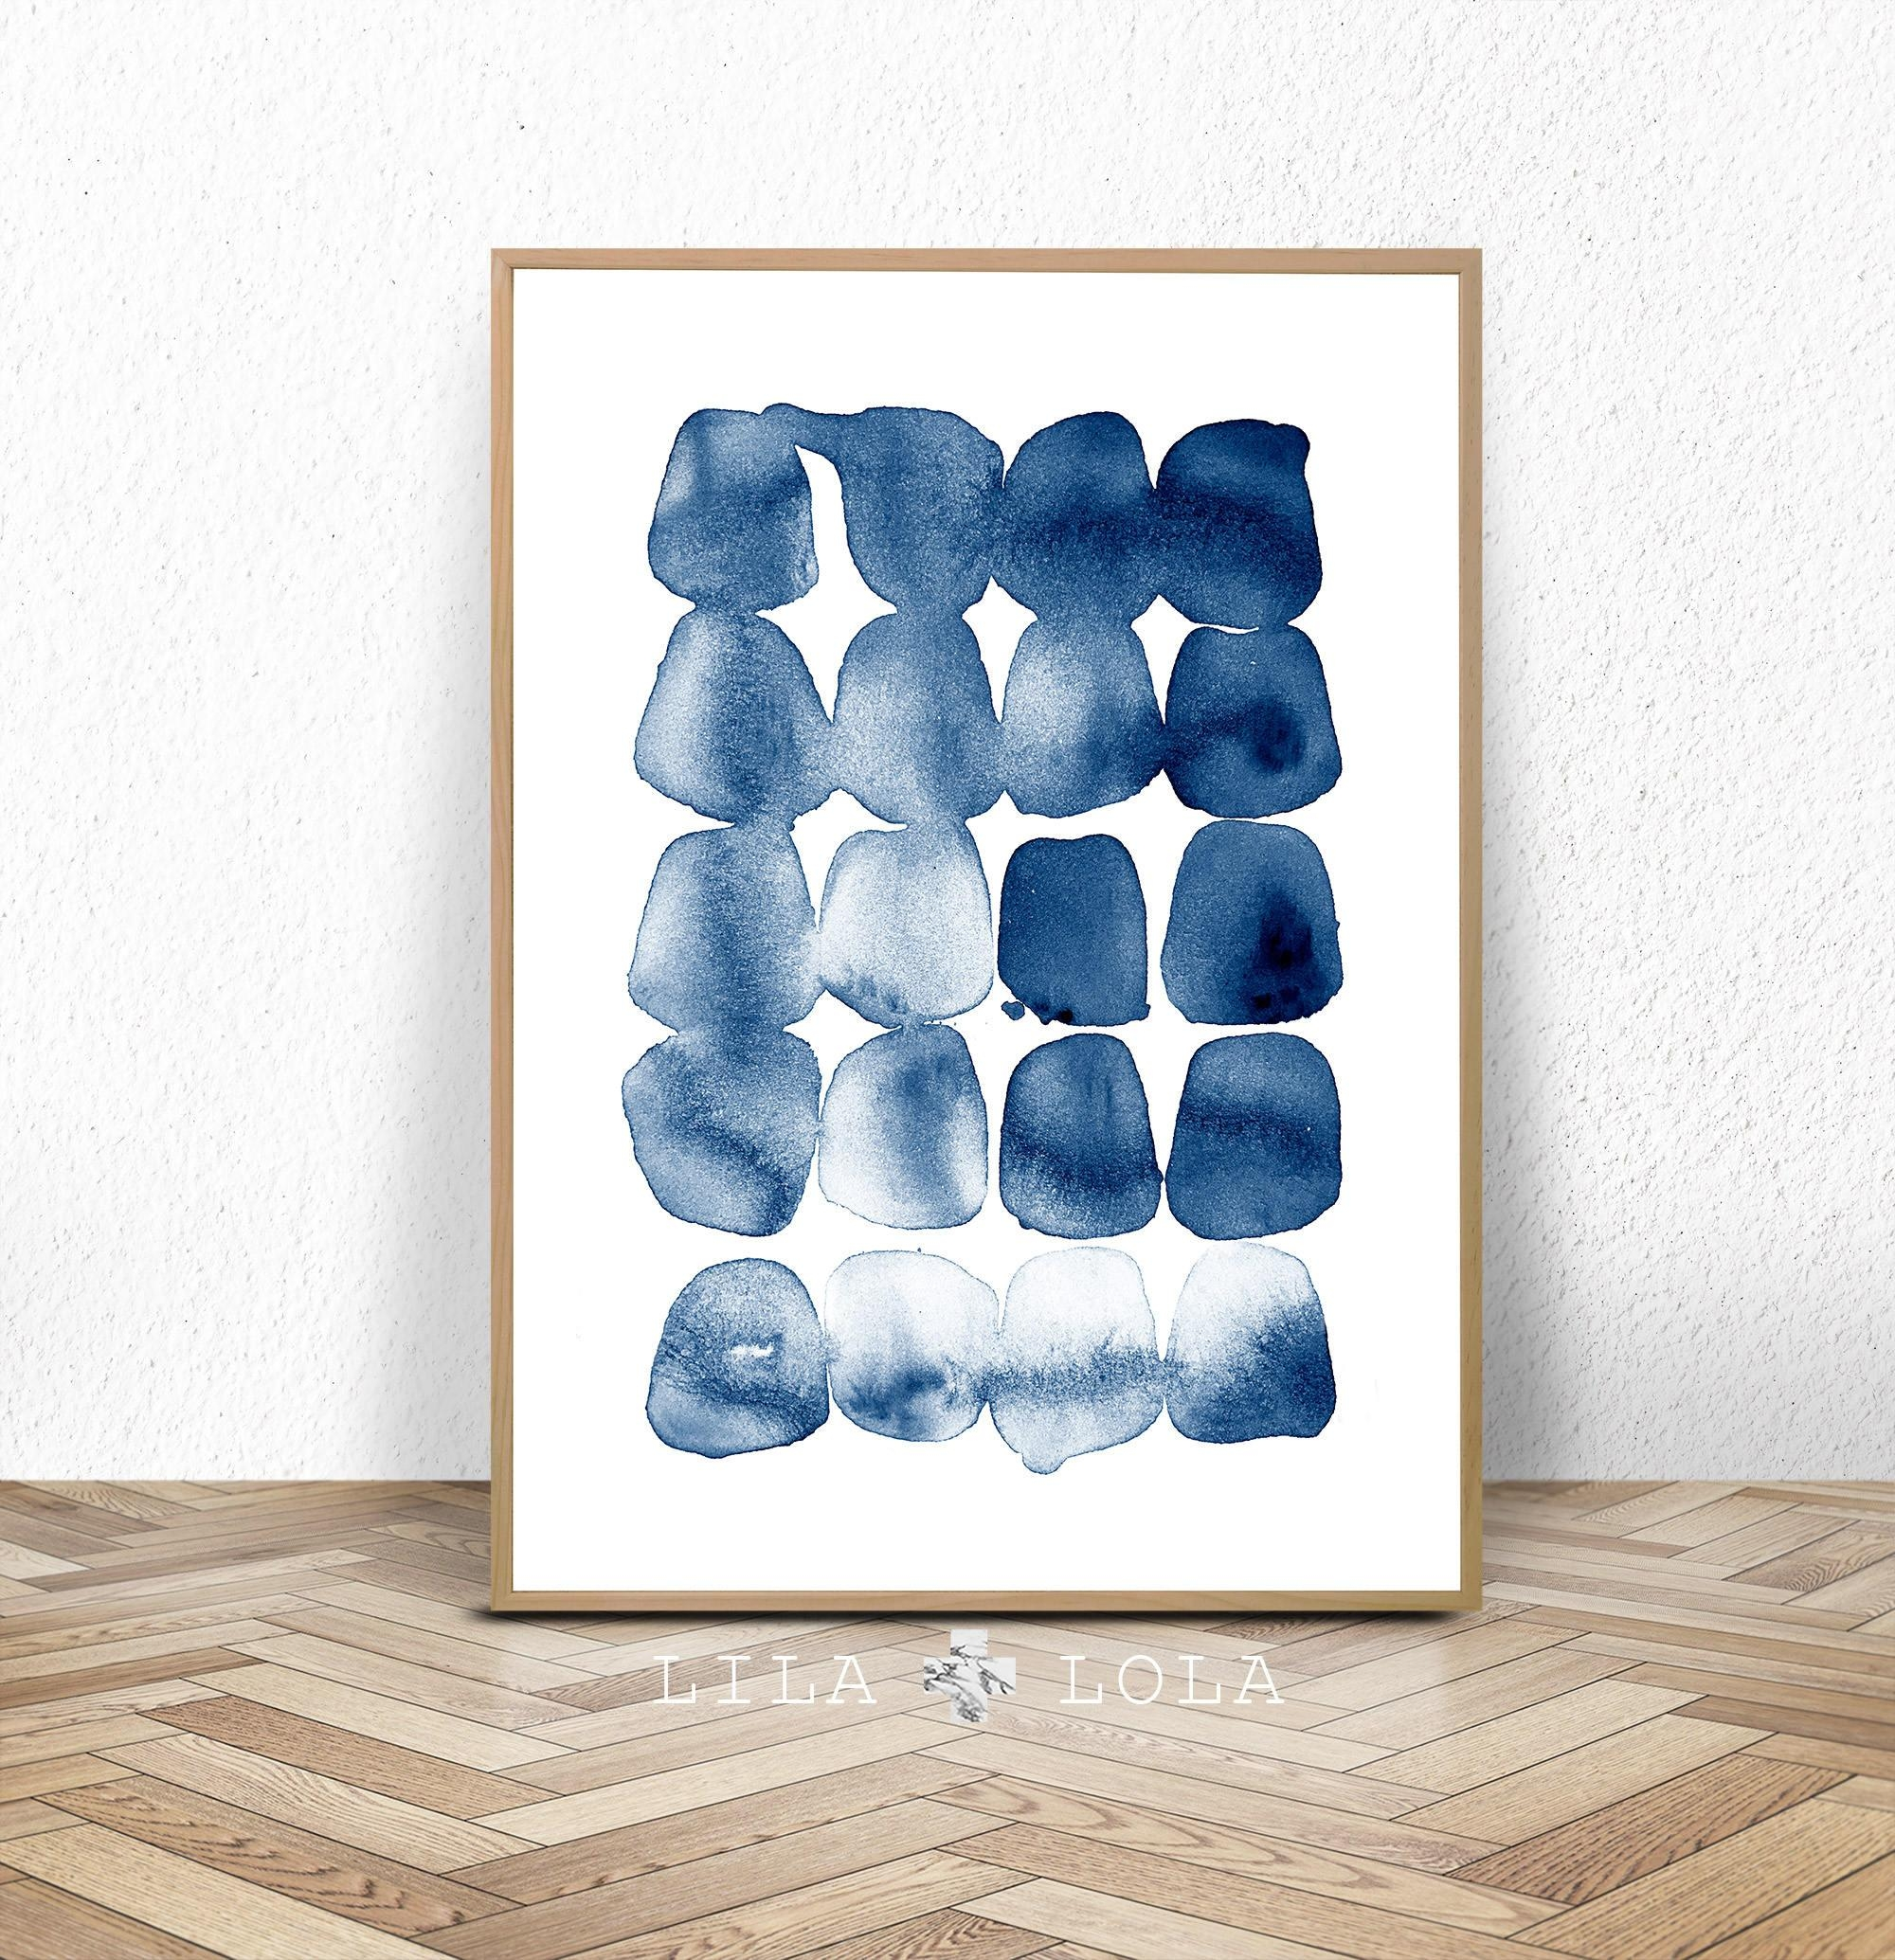 Abstract Print Watercolour Wall Art Modern Minimalist In Blue Wall Art (Image 3 of 20)